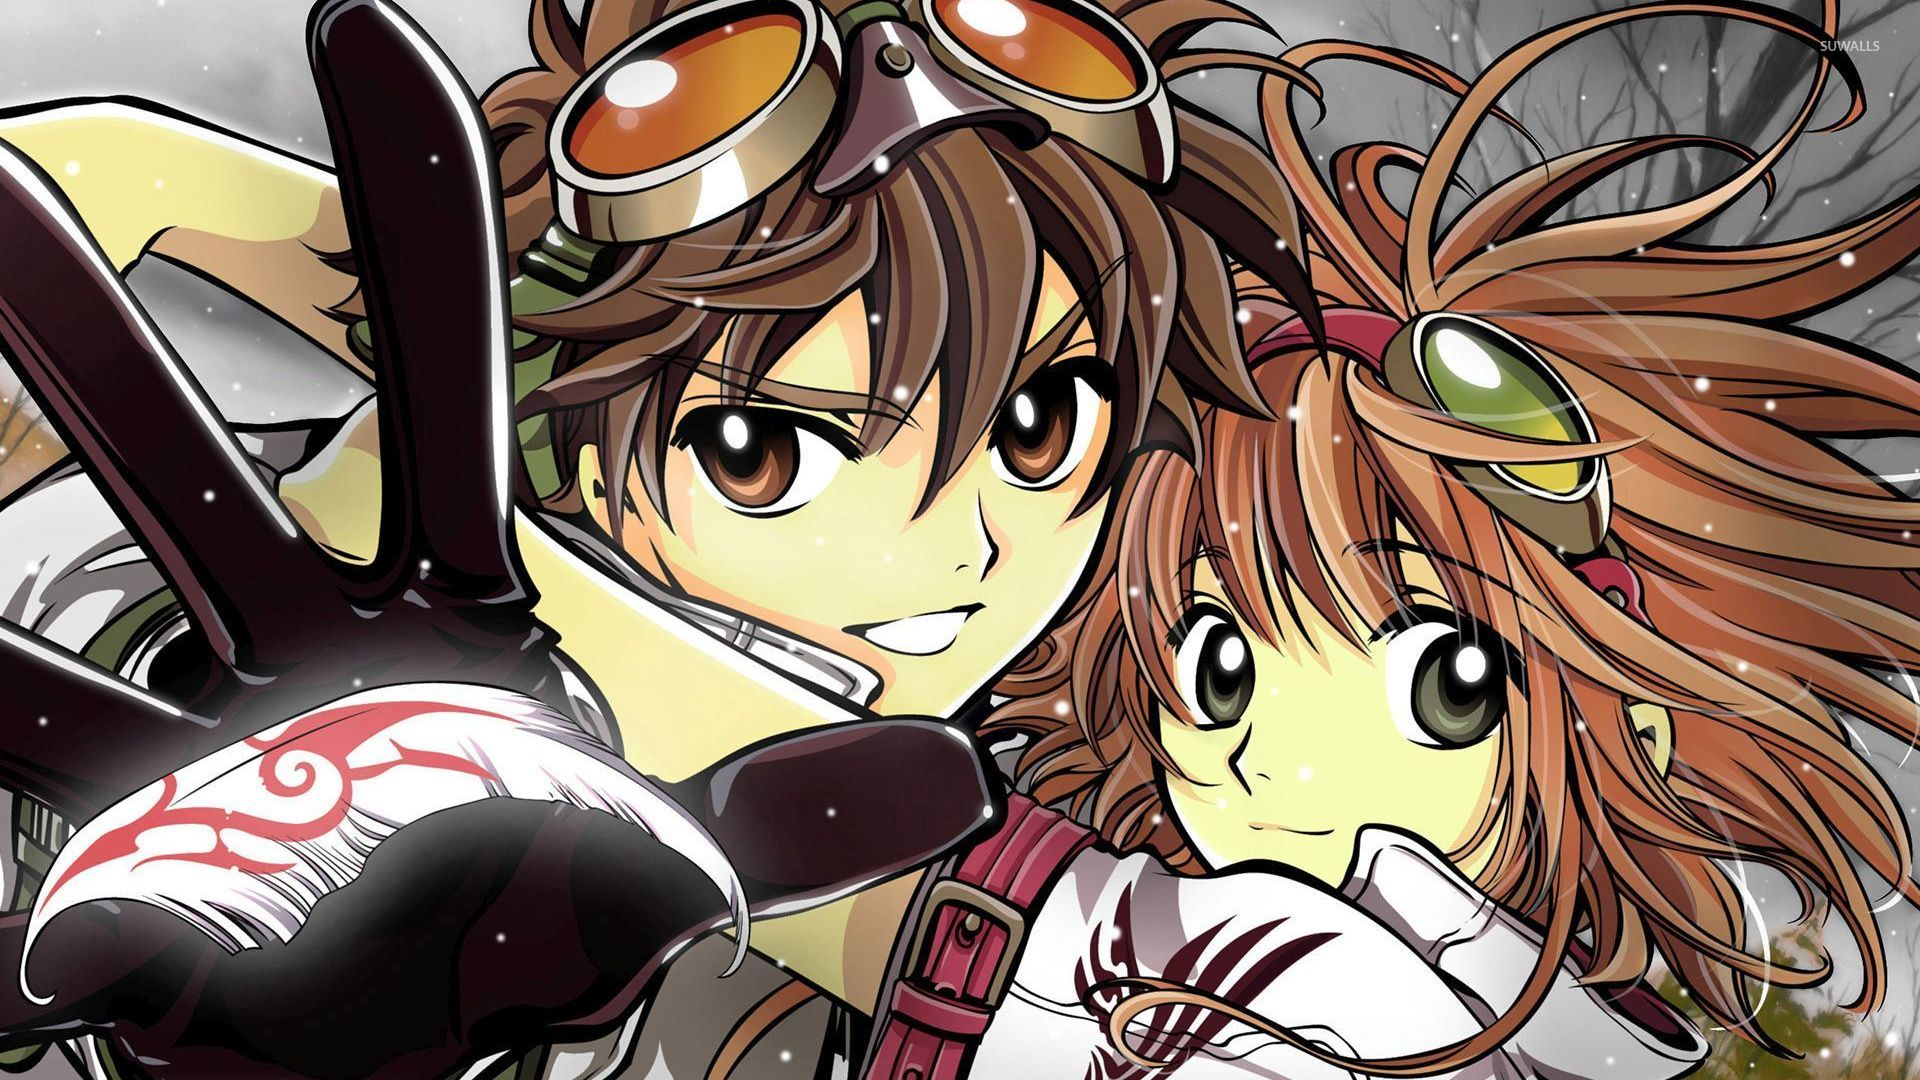 Tsubasa Reservoir Chronicle Vol 5 Hunters and Prey Movie HD free download 720p